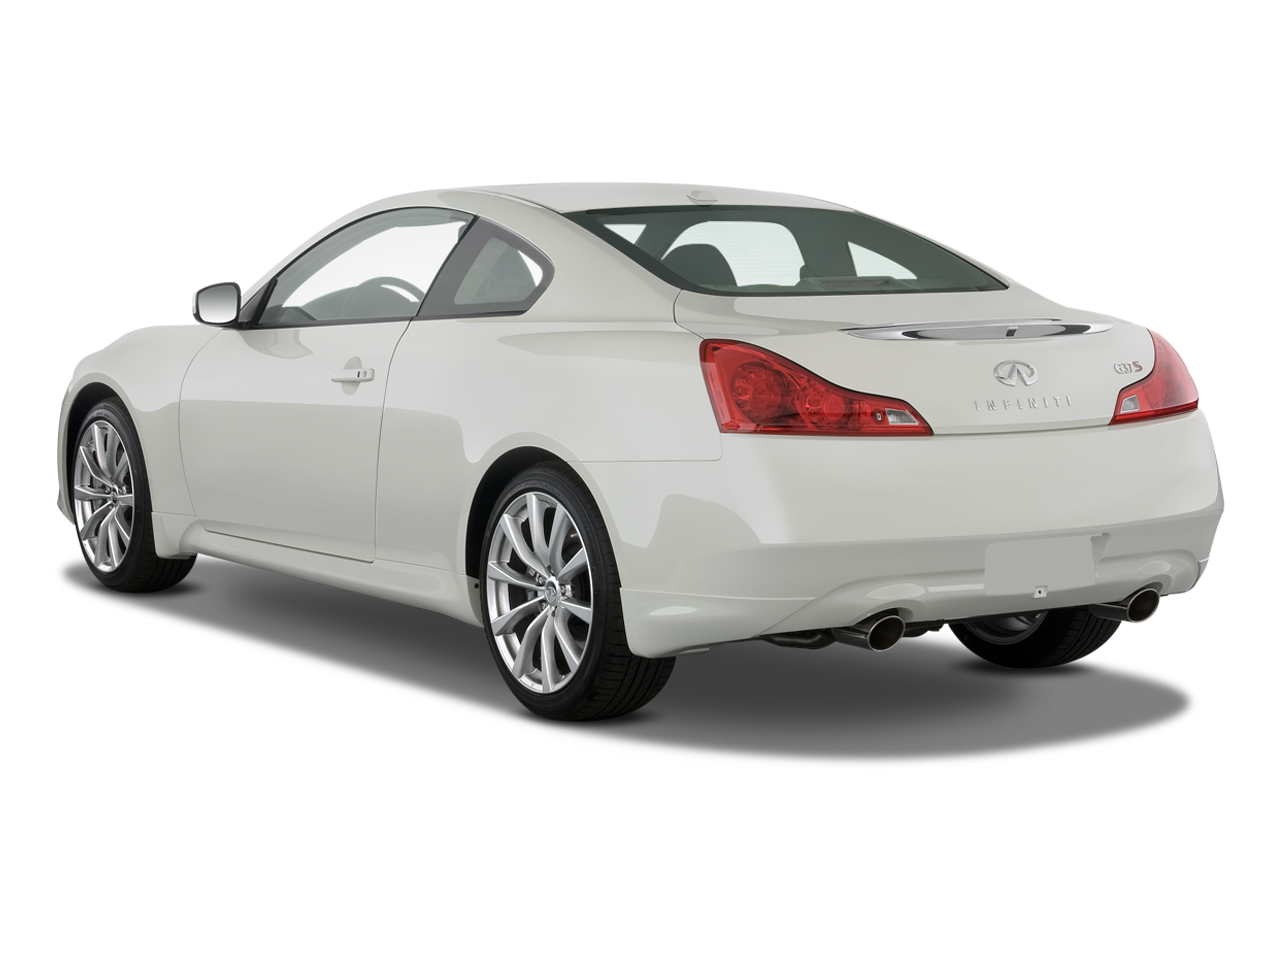 2009 infiniti g37 infiniti luxury coupe and sedan review. Black Bedroom Furniture Sets. Home Design Ideas